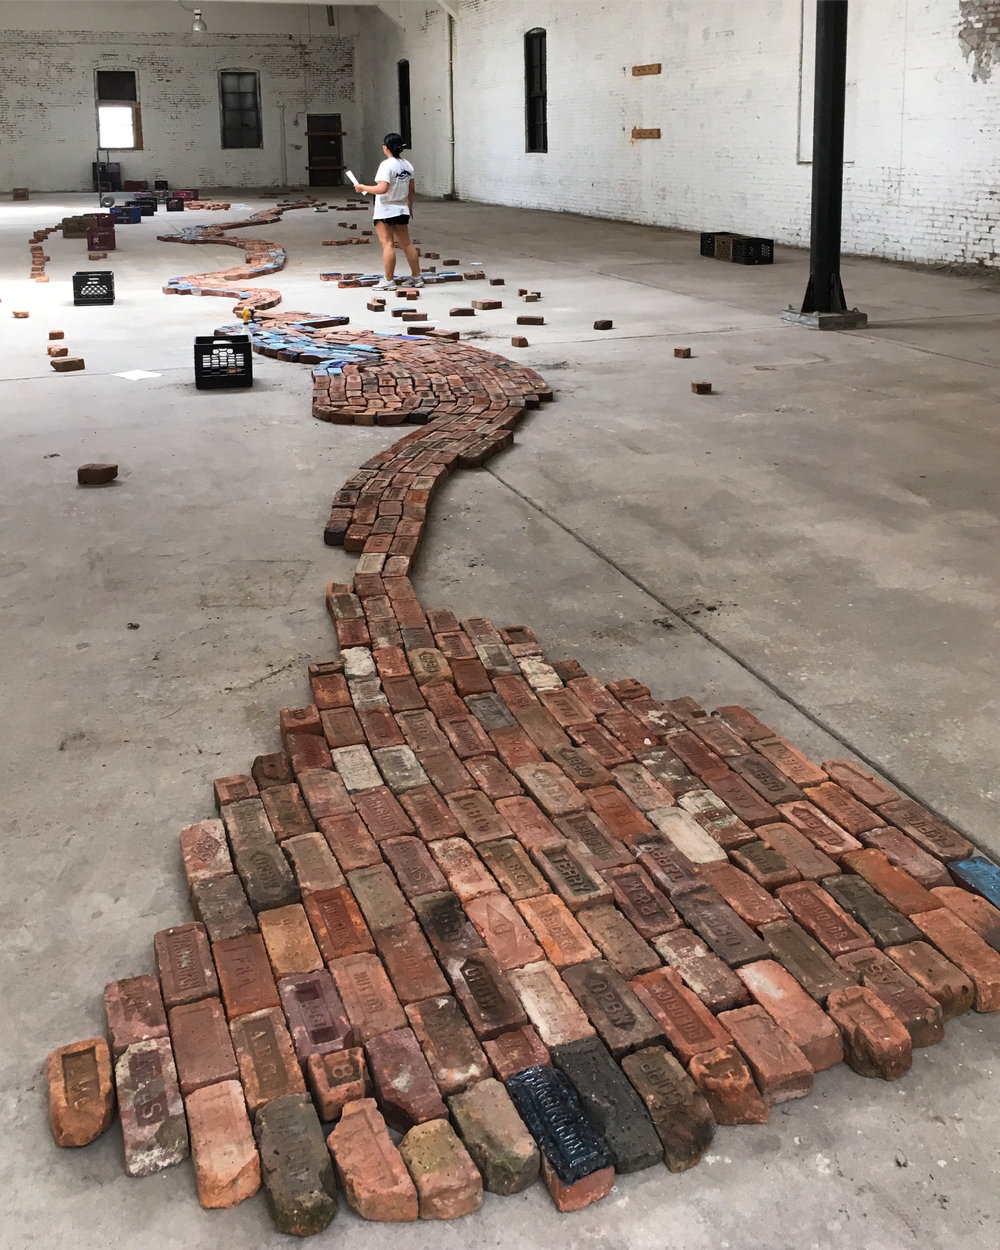 In process view of the installation August 2018.